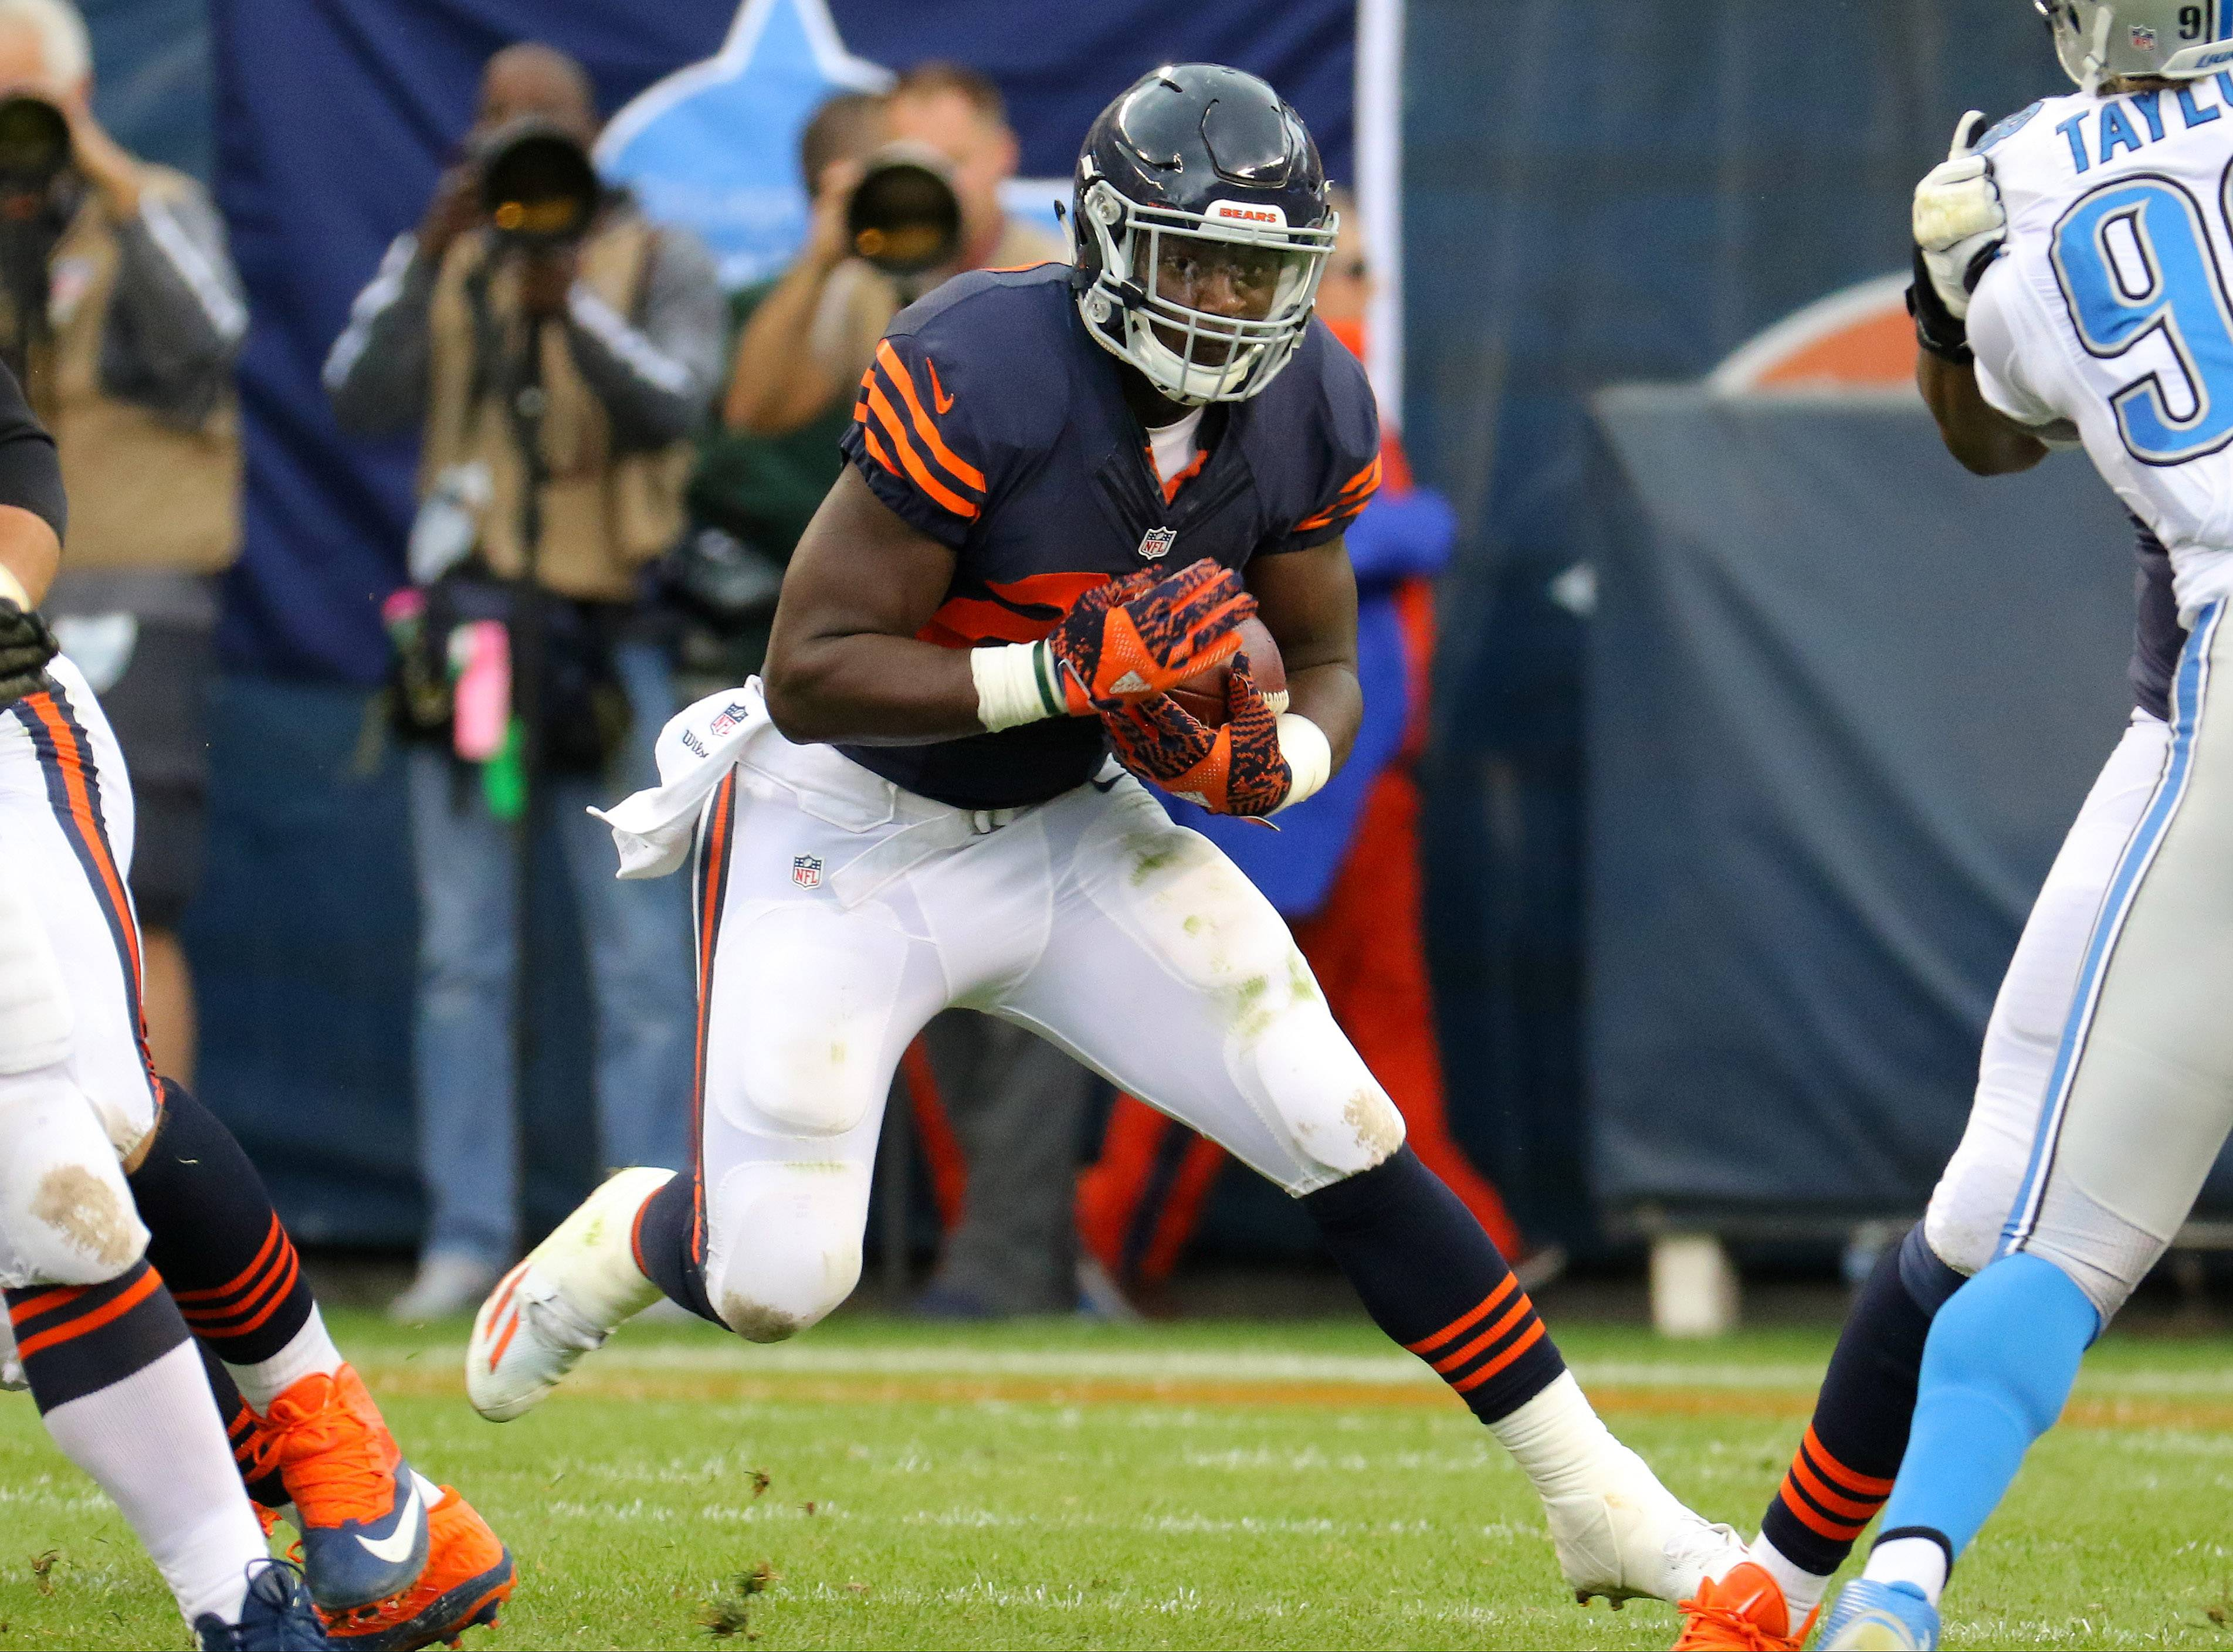 Howard, Bellamy latest Piccolo Award winners for Bears